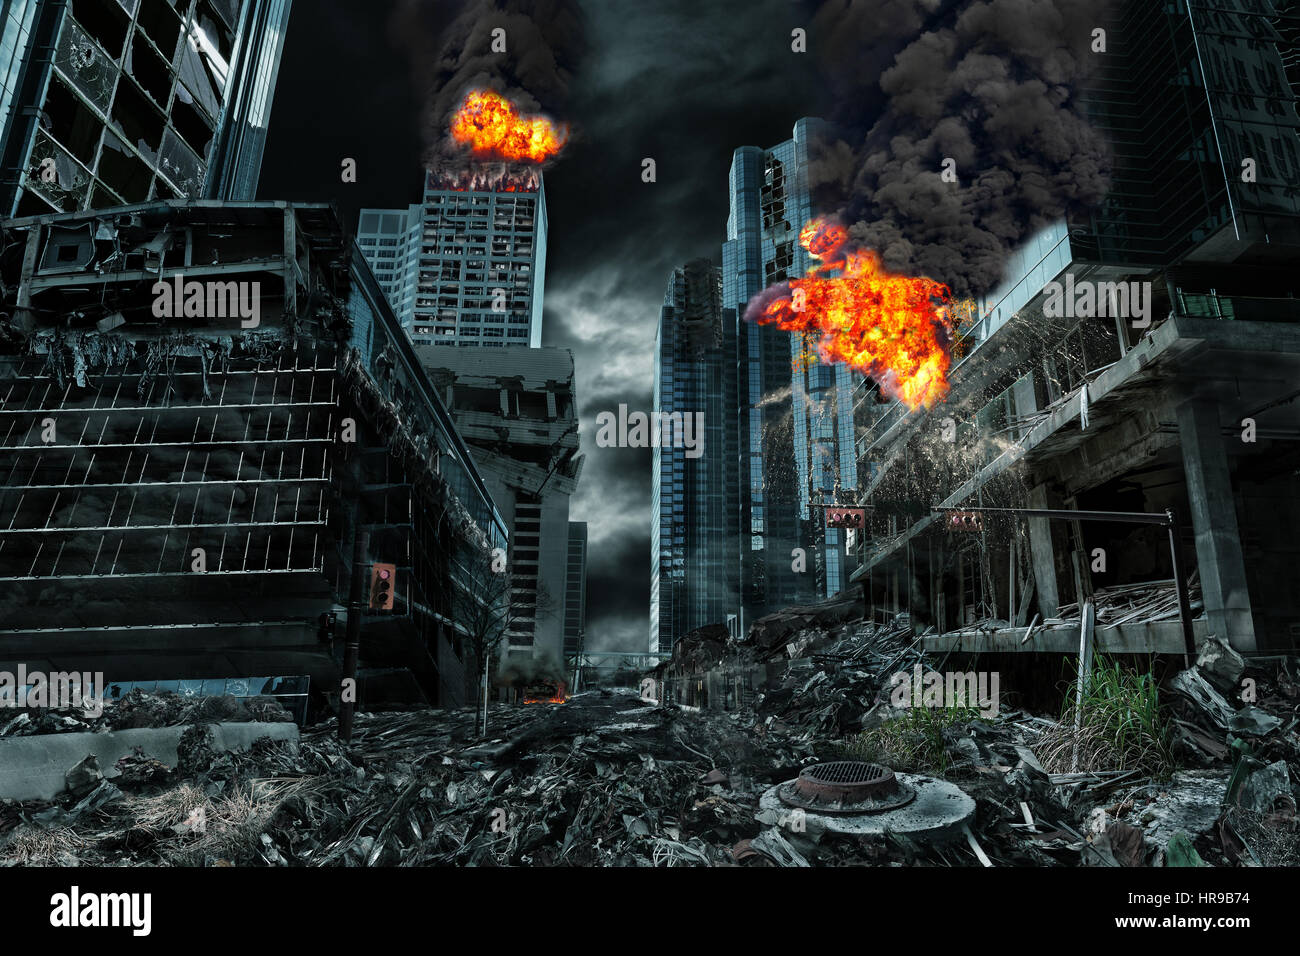 Detailed destruction of fictitious city with fires, explosions, debris and collapsing structures. Concept of war, - Stock Image